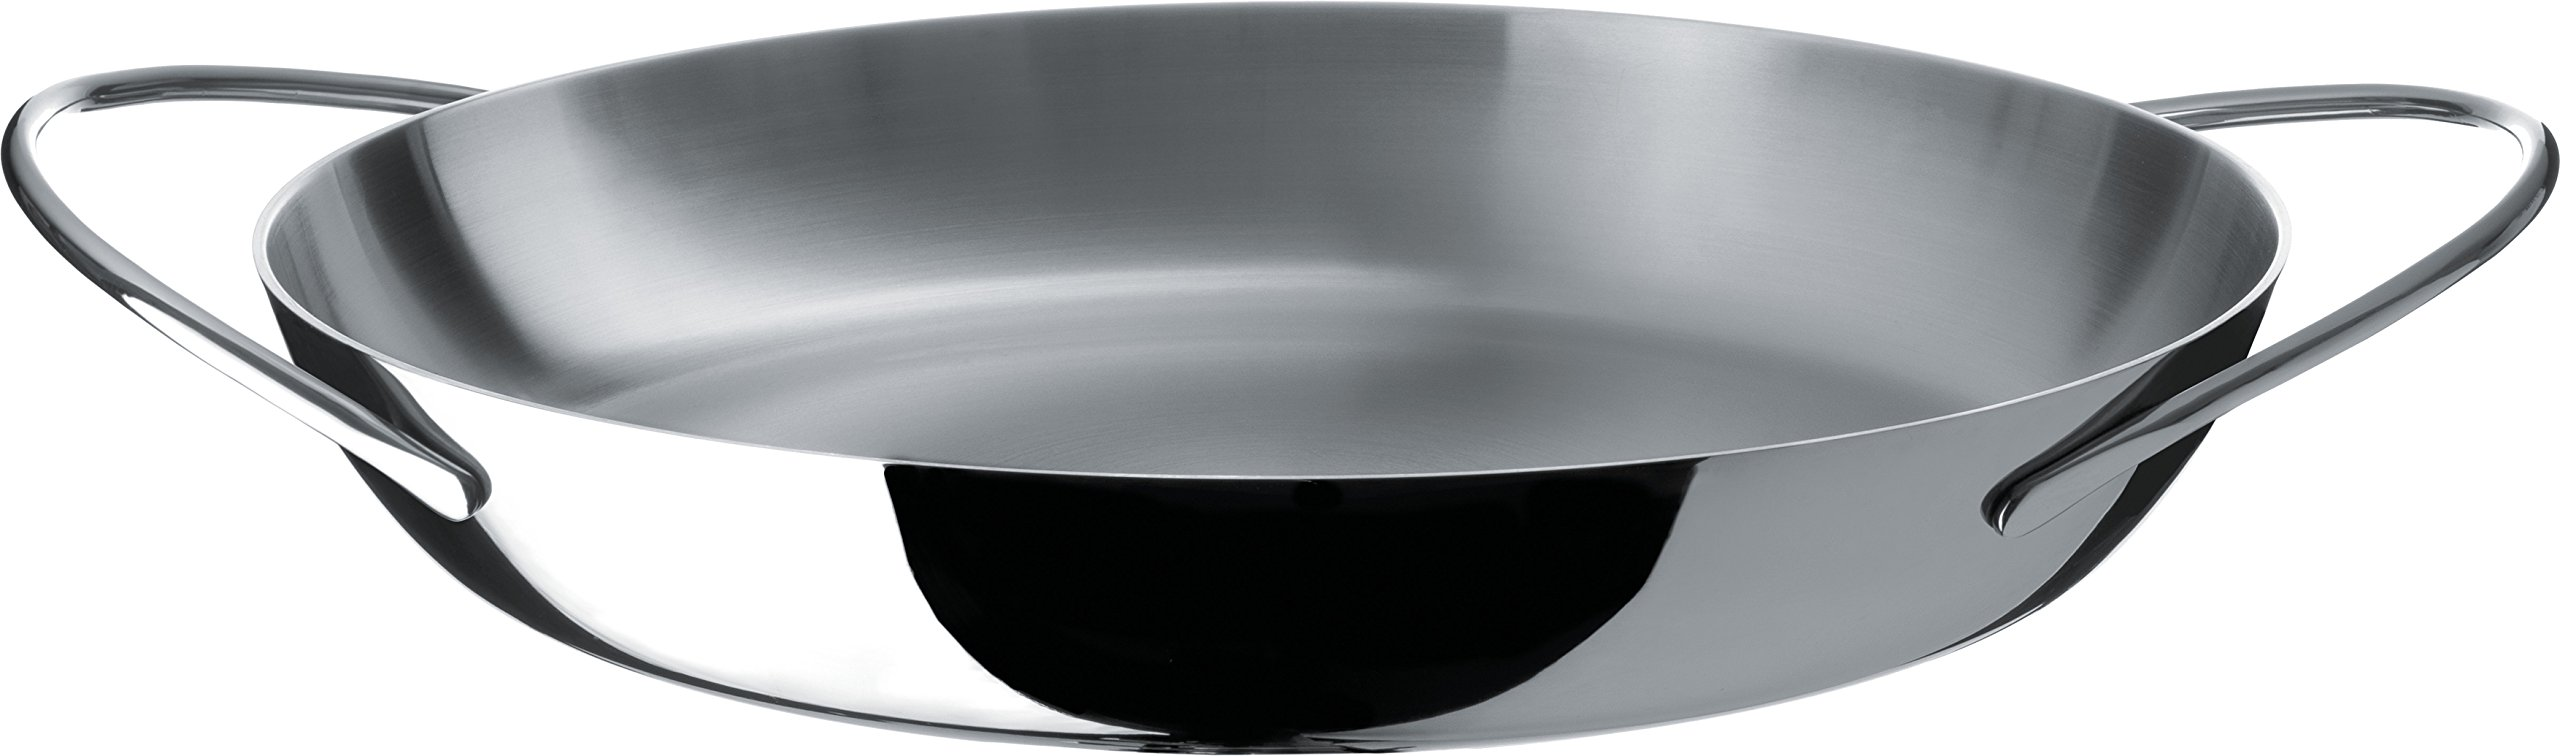 Alessi ''Domenica'' Low Casserole With Two Handles in Multiply, Silver